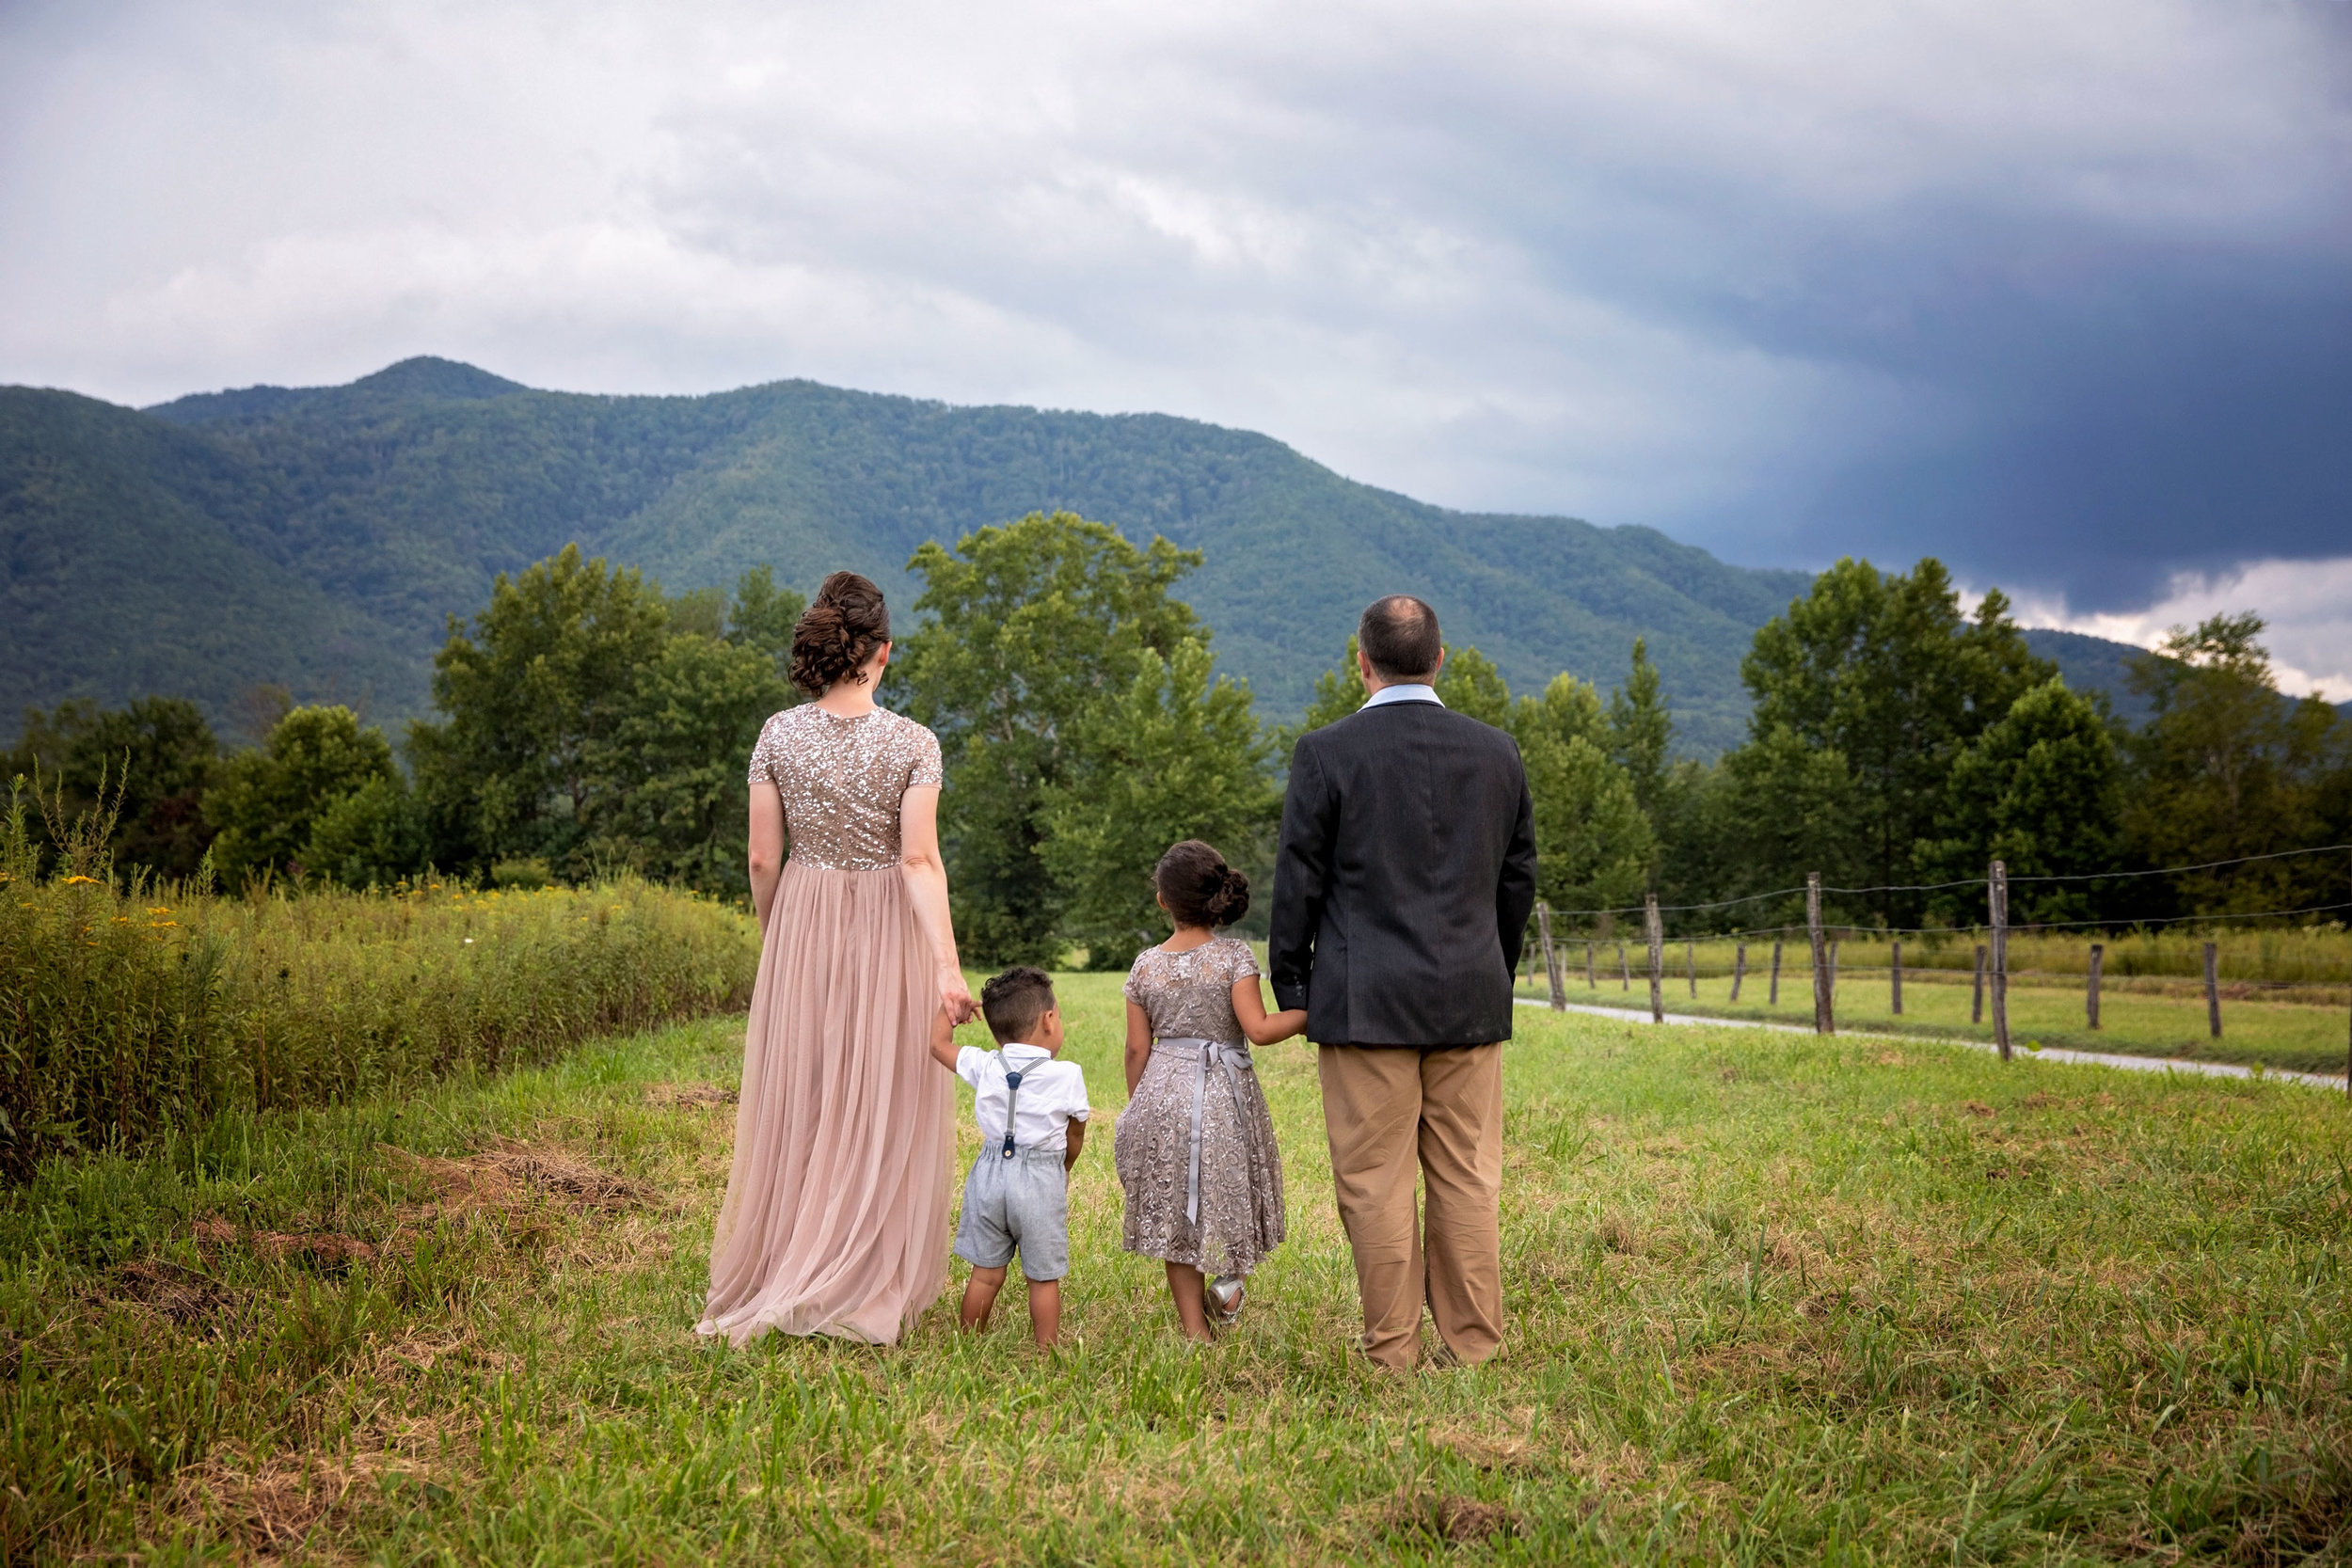 amoky-mountain-photographers-family-pictures-on-vacation.jpg